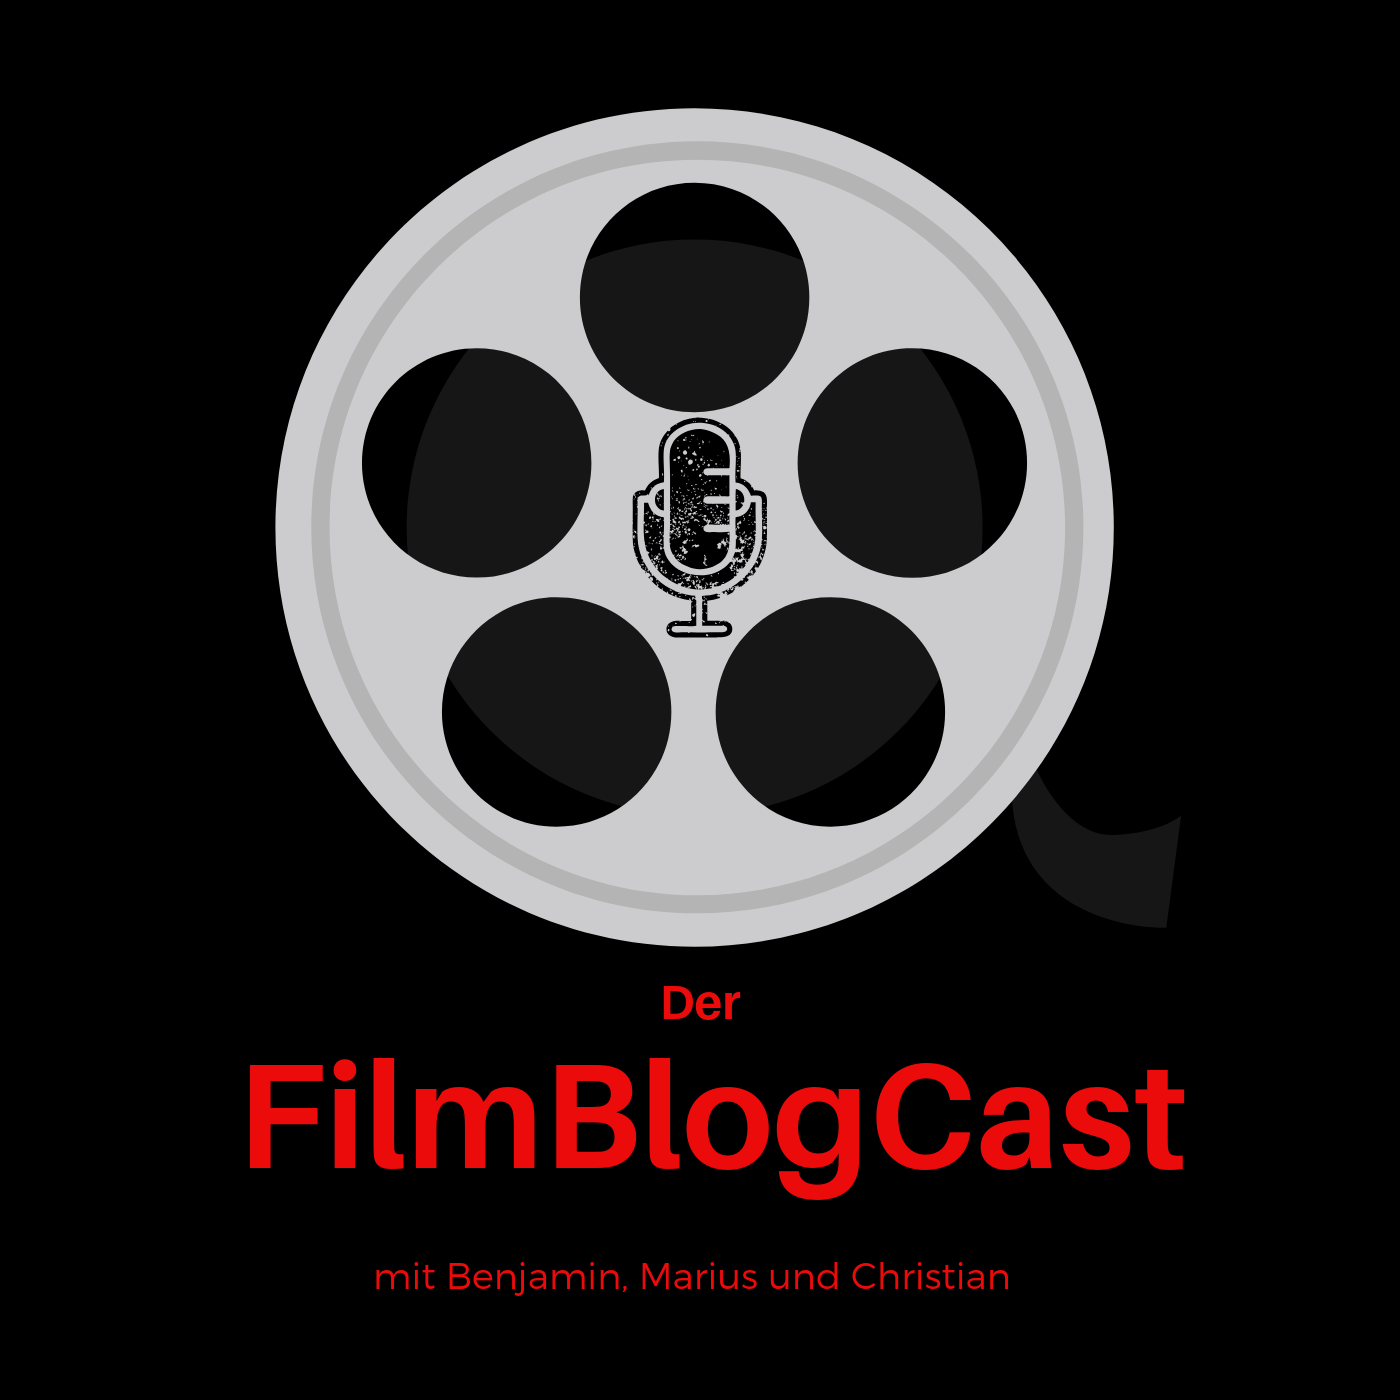 FilmBlogCast #22: Star Wars - Episode 1 bis 6